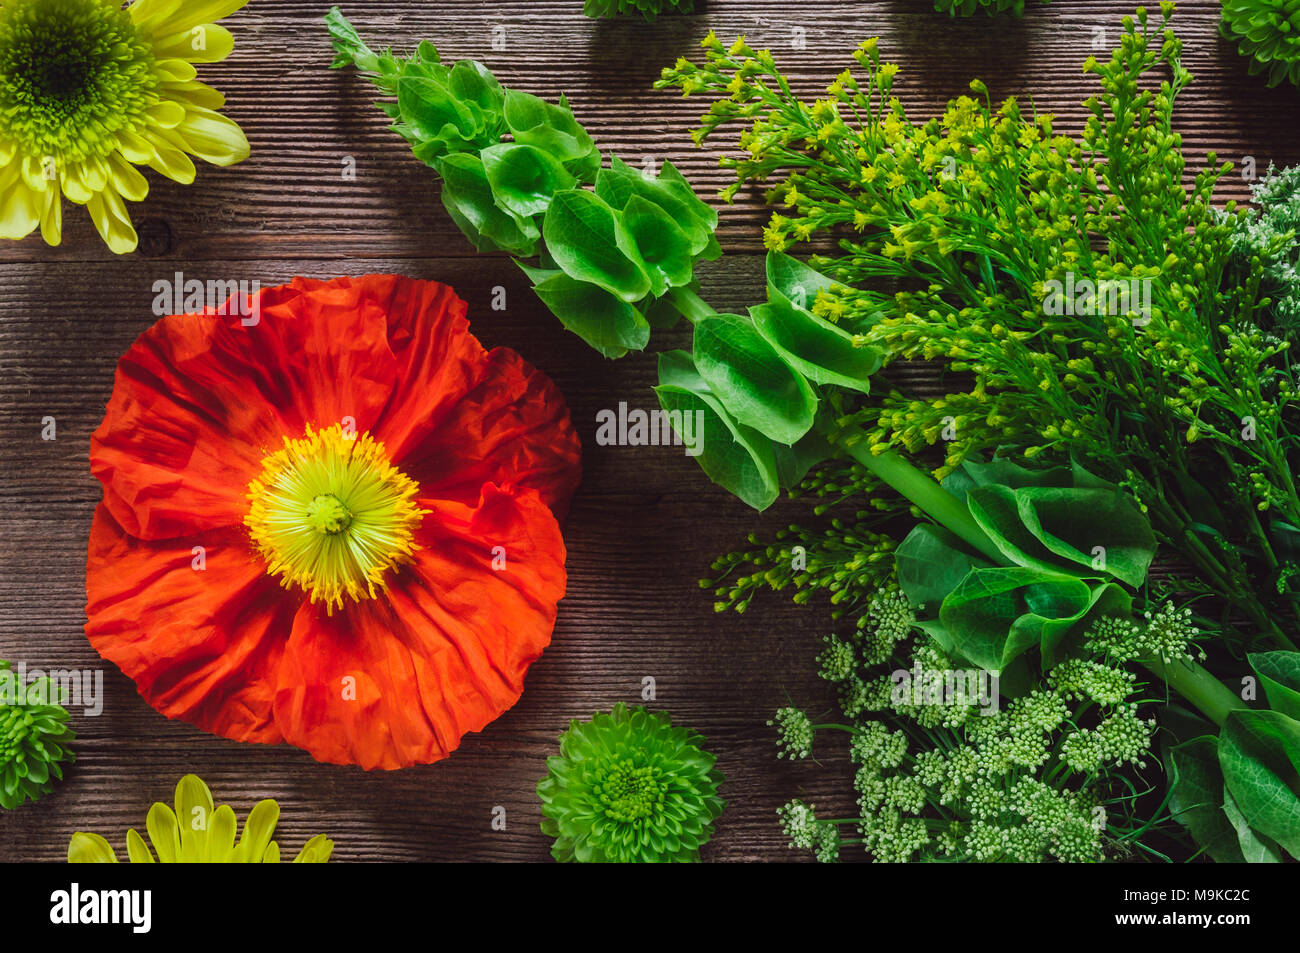 Flowering Plants Arranged on Wooden Table including, Poppy, Chrysanthemum, and Moluccella laevis - Stock Image